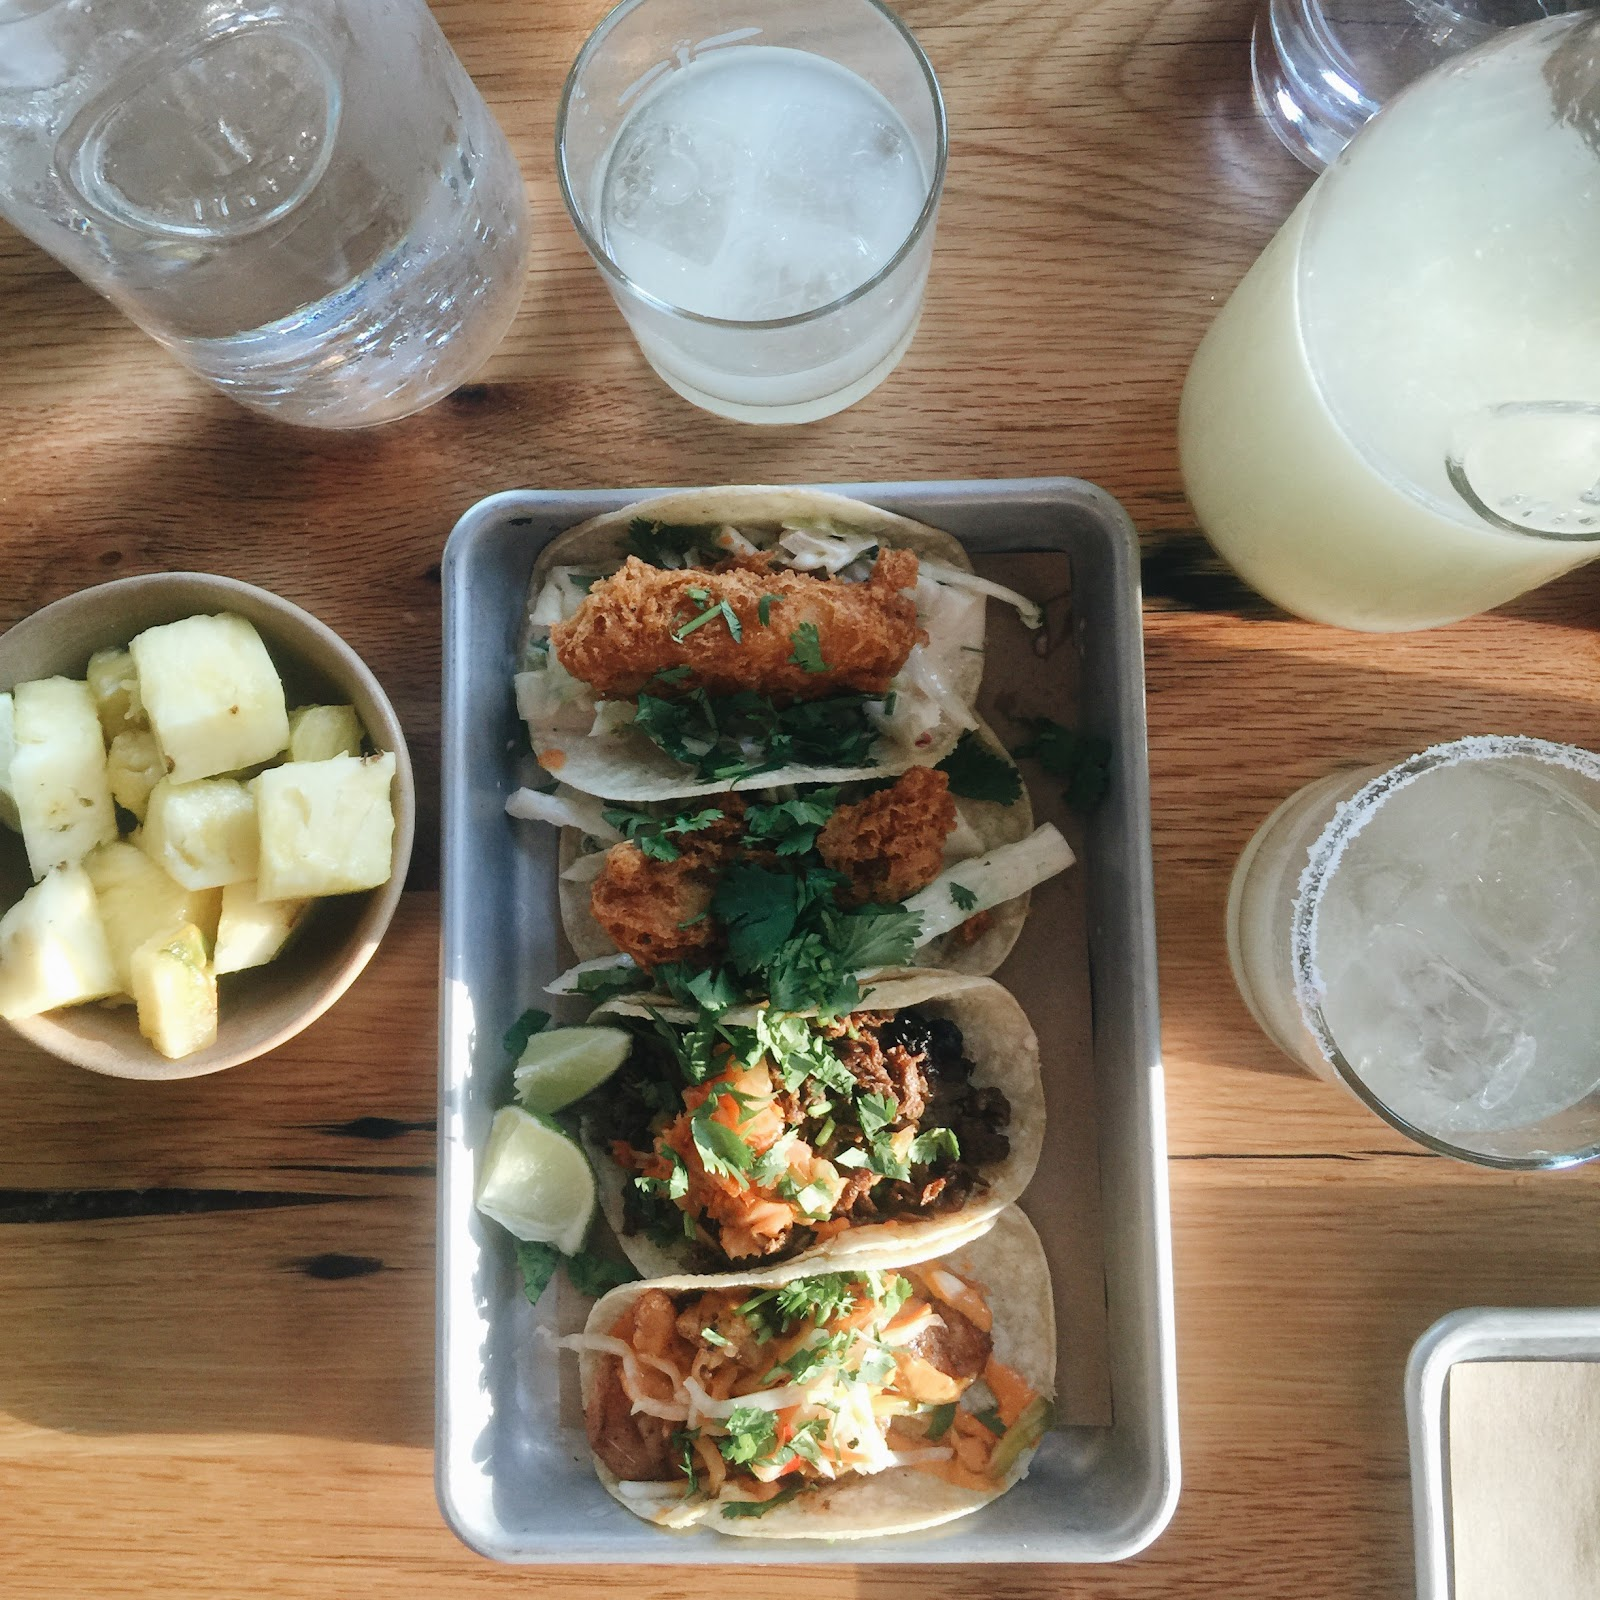 Street tacos at Bartaco in 12 South, Nashville